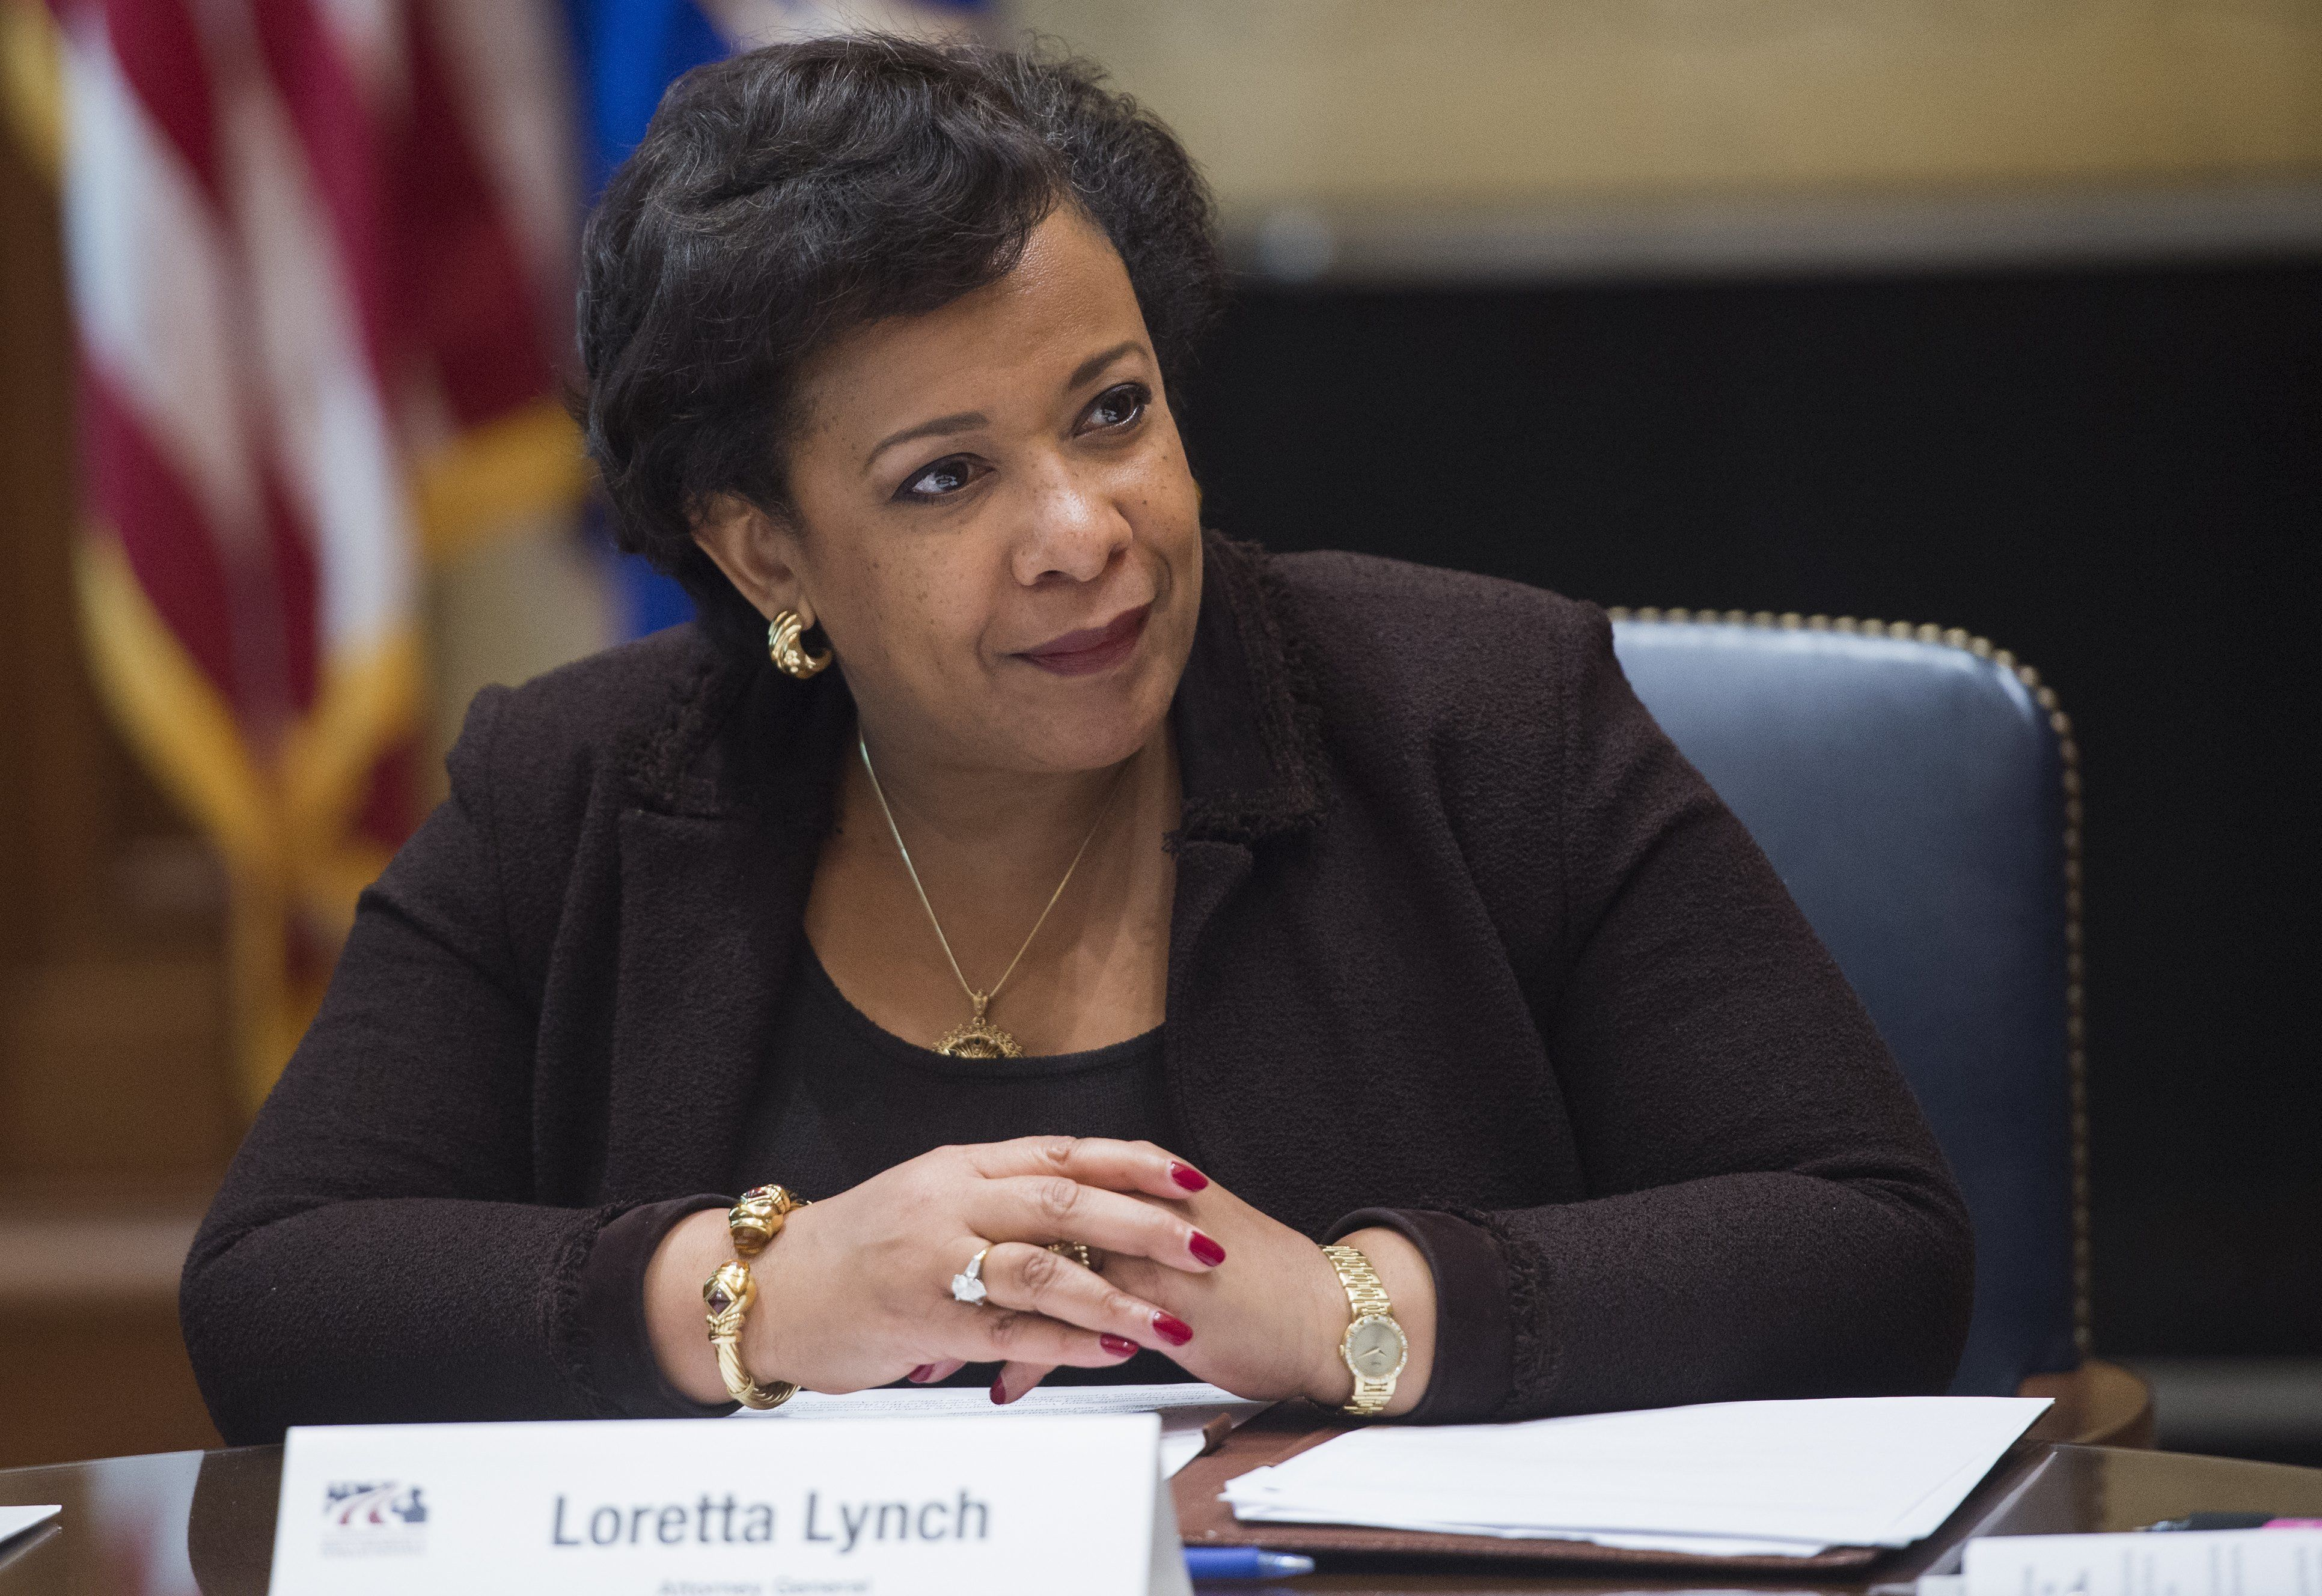 US Attorney General Loretta Lynch attends a roundtable meeting about the US Department of Justice's Servicemembers and Veterans Initiative, which helps with legal issues and protect the rights of servicemembers, veterans and their families, at the Department of Justice in Washington, DC, November 2, 2016. / AFP / SAUL LOEB        (Photo credit should read SAUL LOEB/AFP/Getty Images)